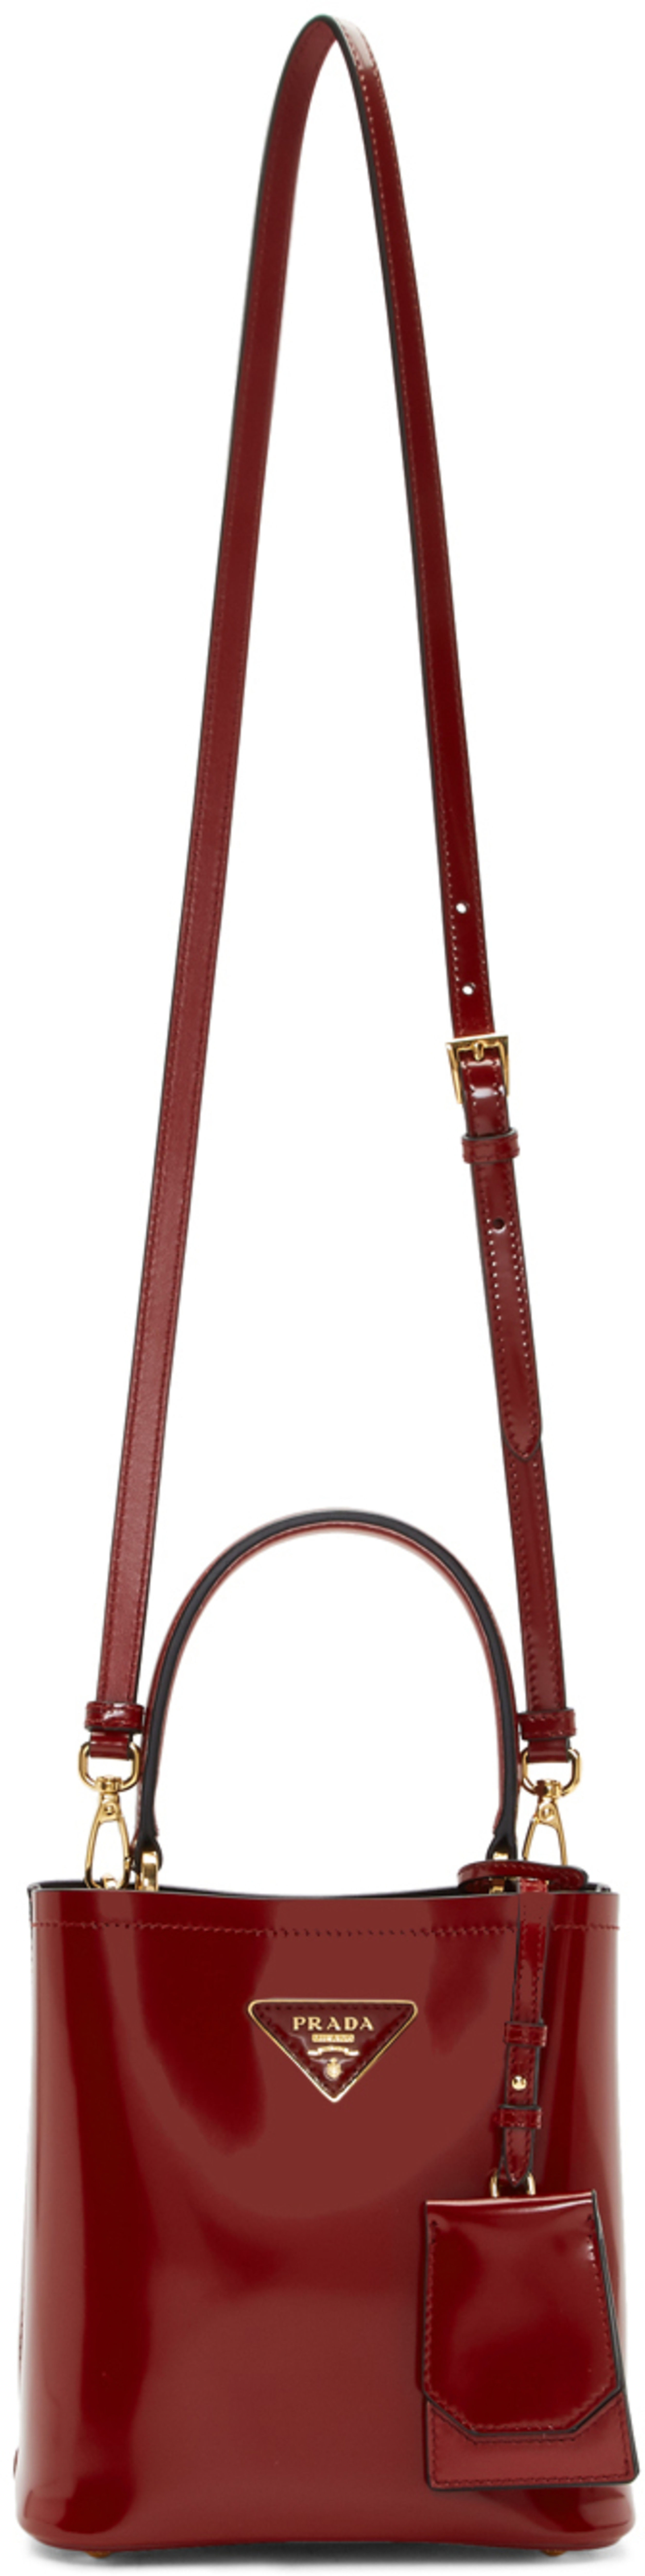 c04a863f Red Small Double Bag